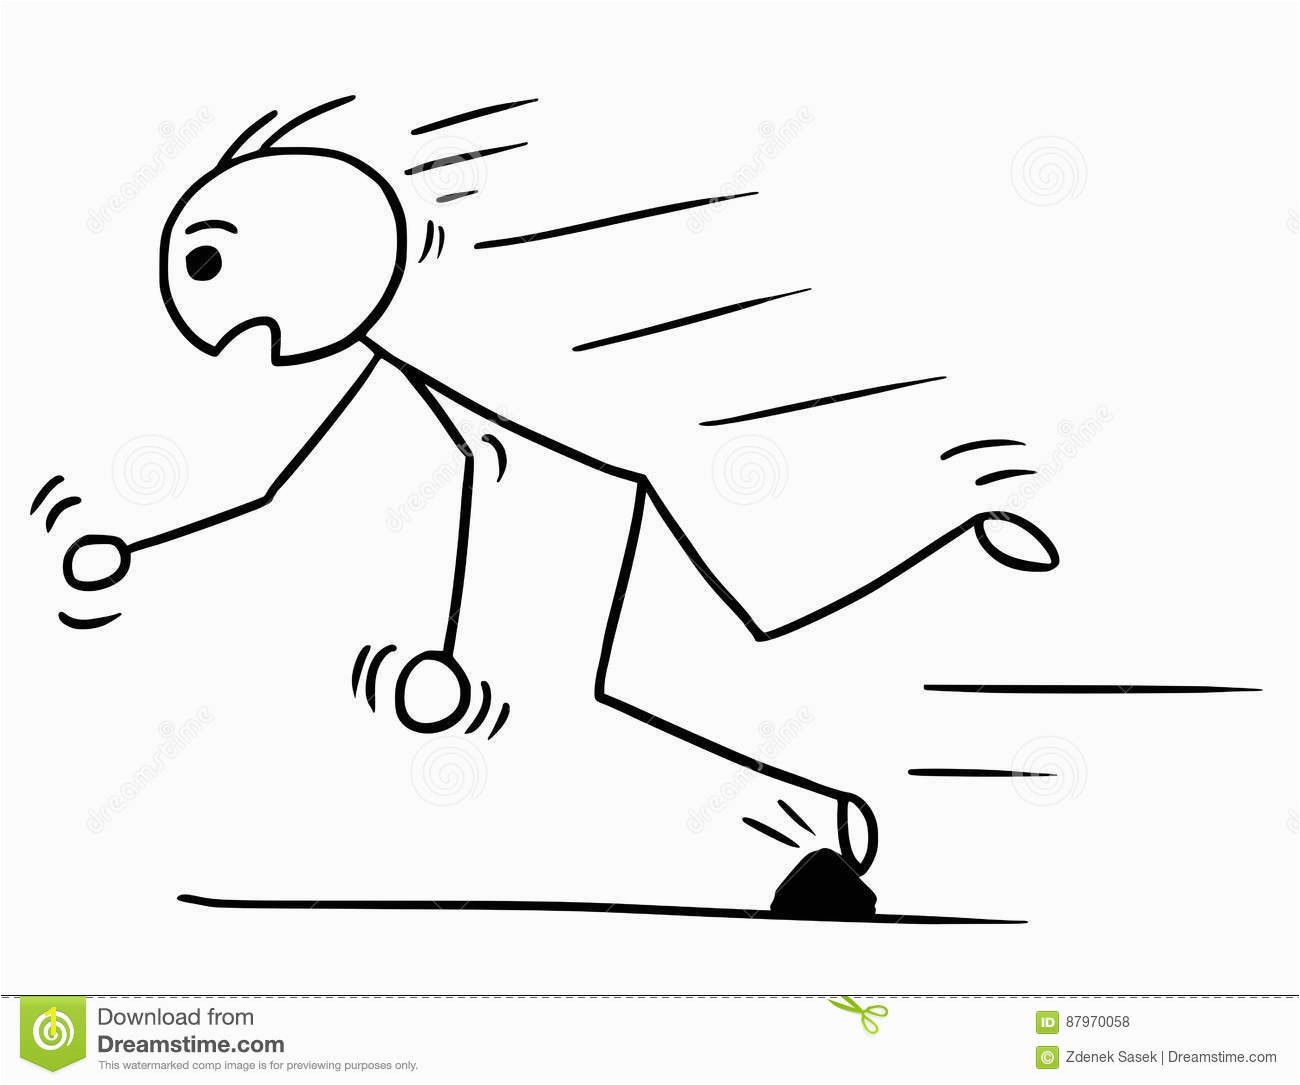 Vector Stickman Cartoon of Man Falling Stumble Trip Over Stone